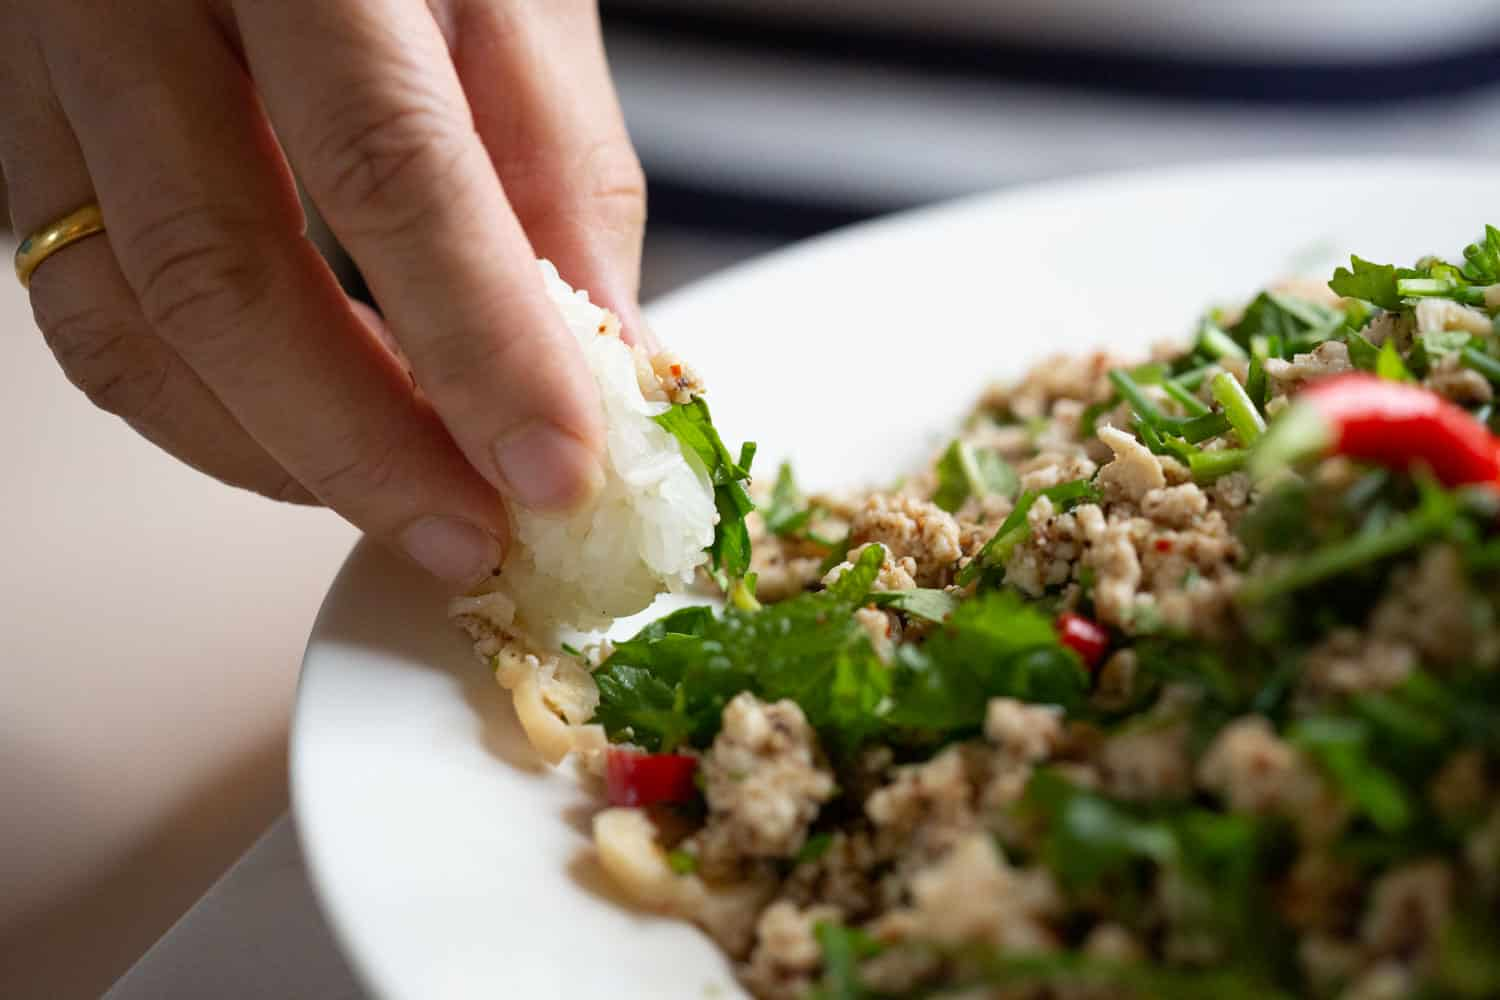 laos larb with hands grabbing portion